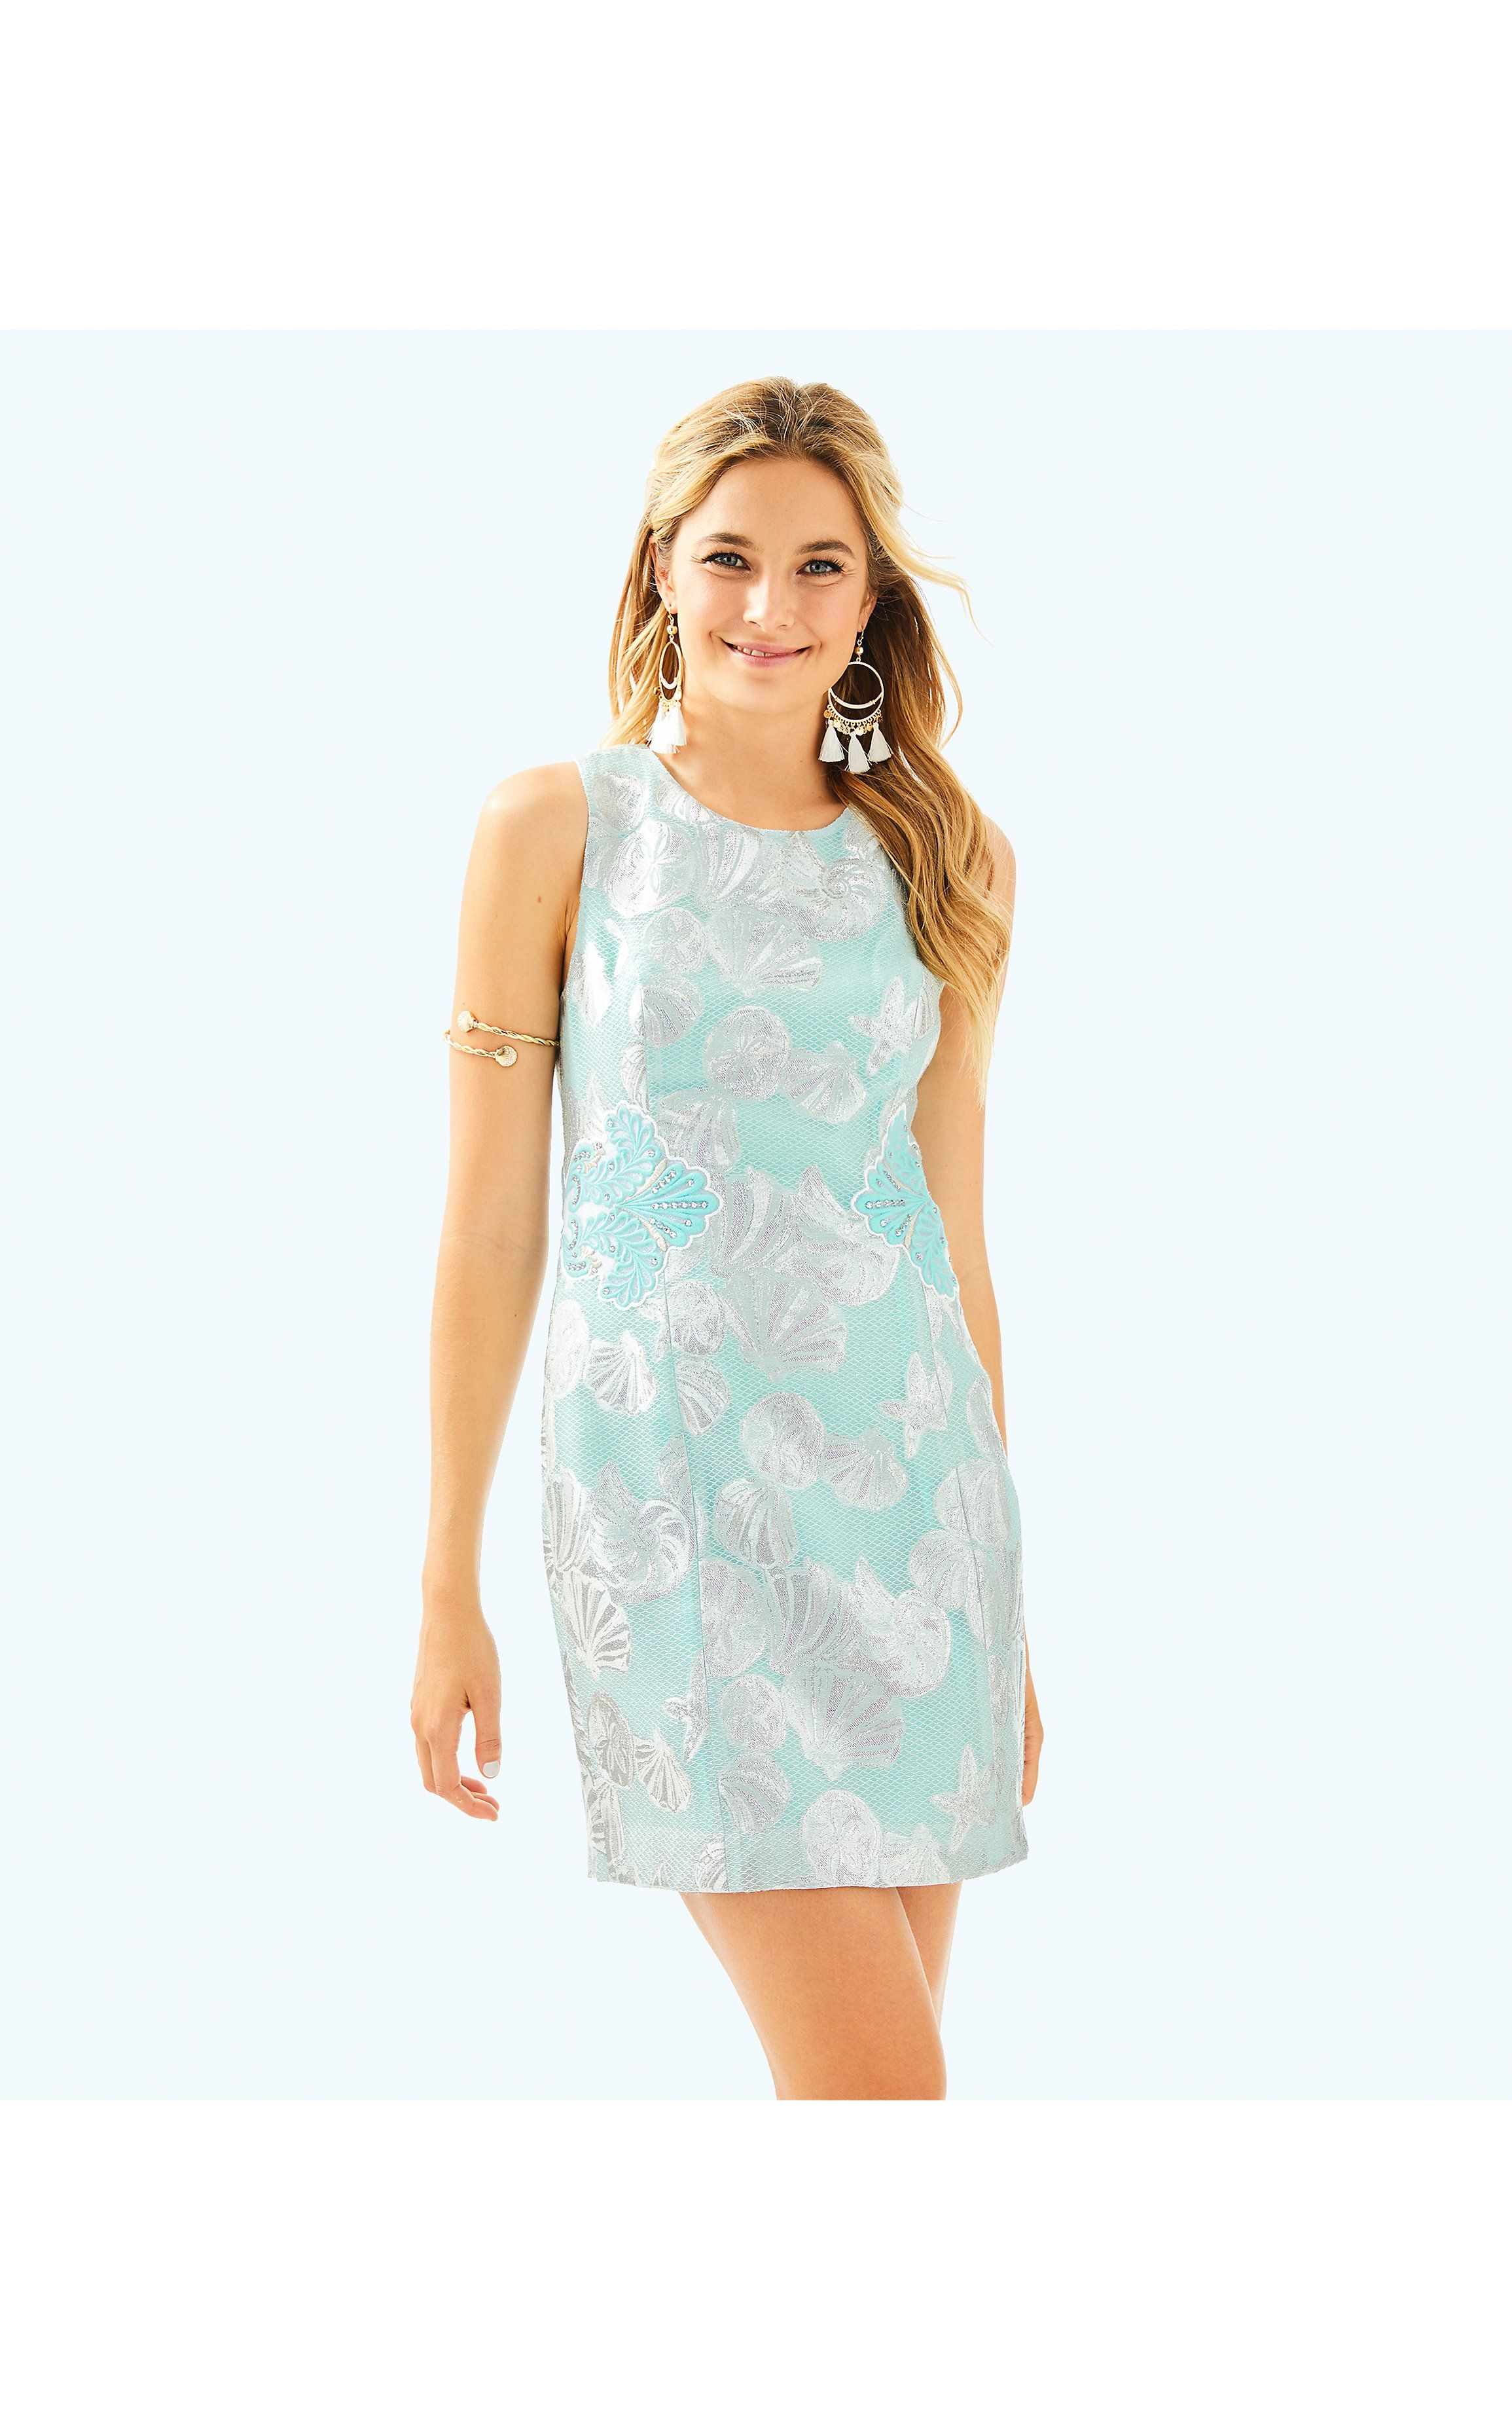 1498d651d8c4ce Mila Shift in Seasalt Tint Metallic Shell | Products | Dresses ...